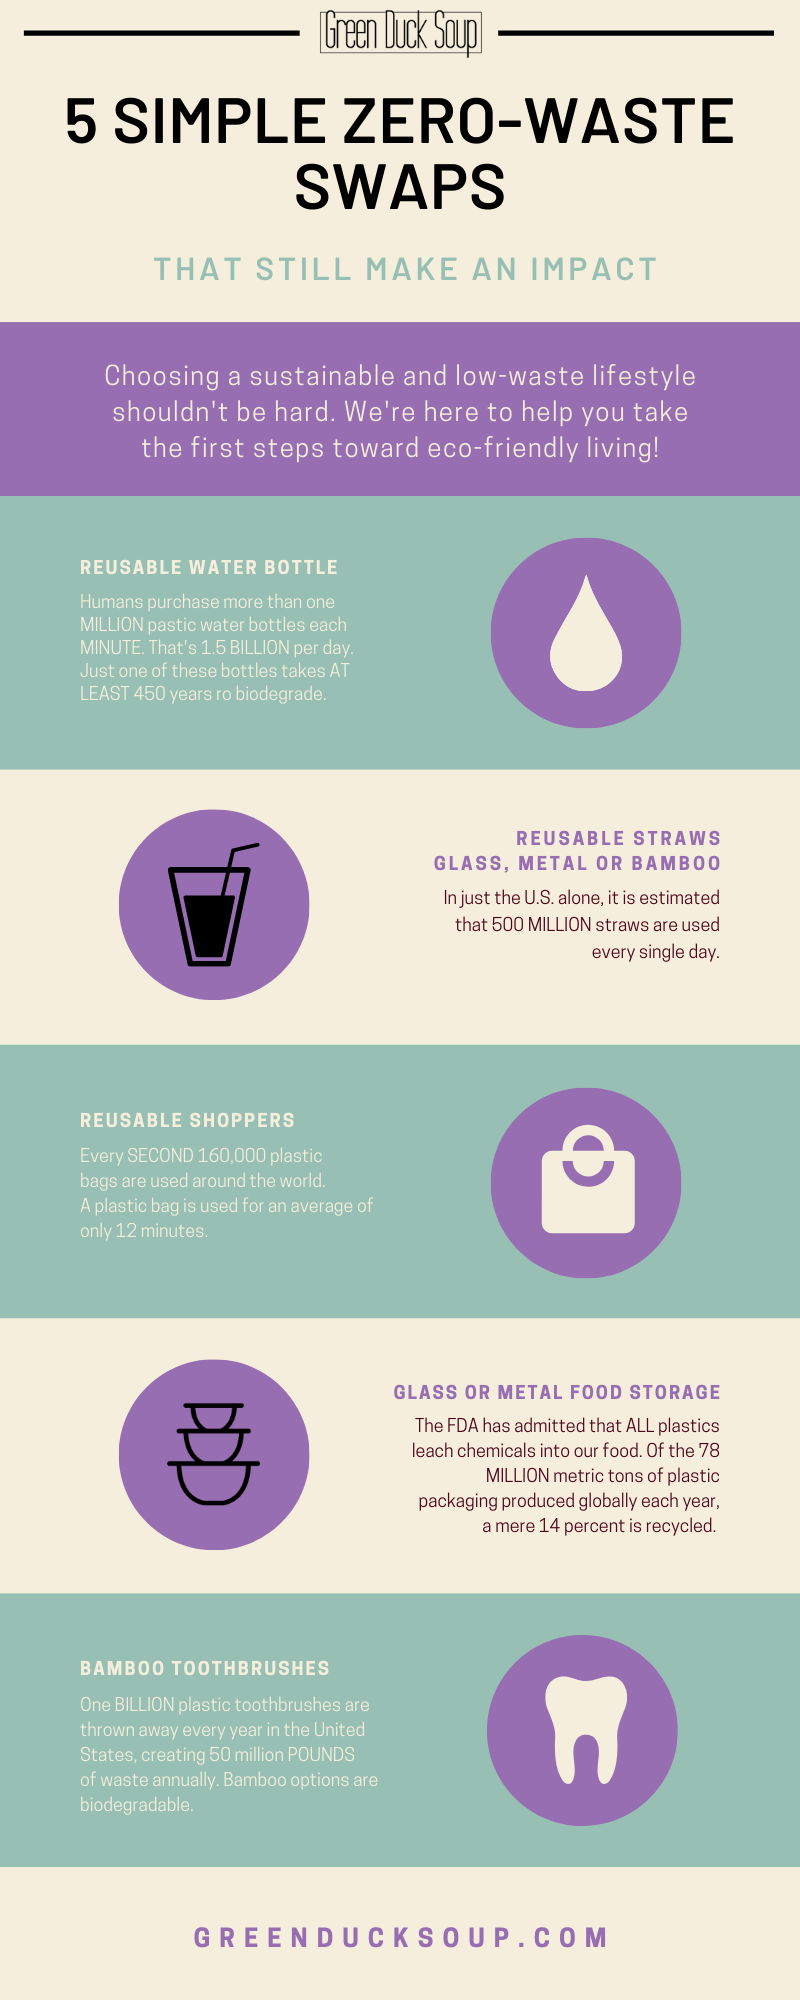 5 Simple Zero-Waste Swaps